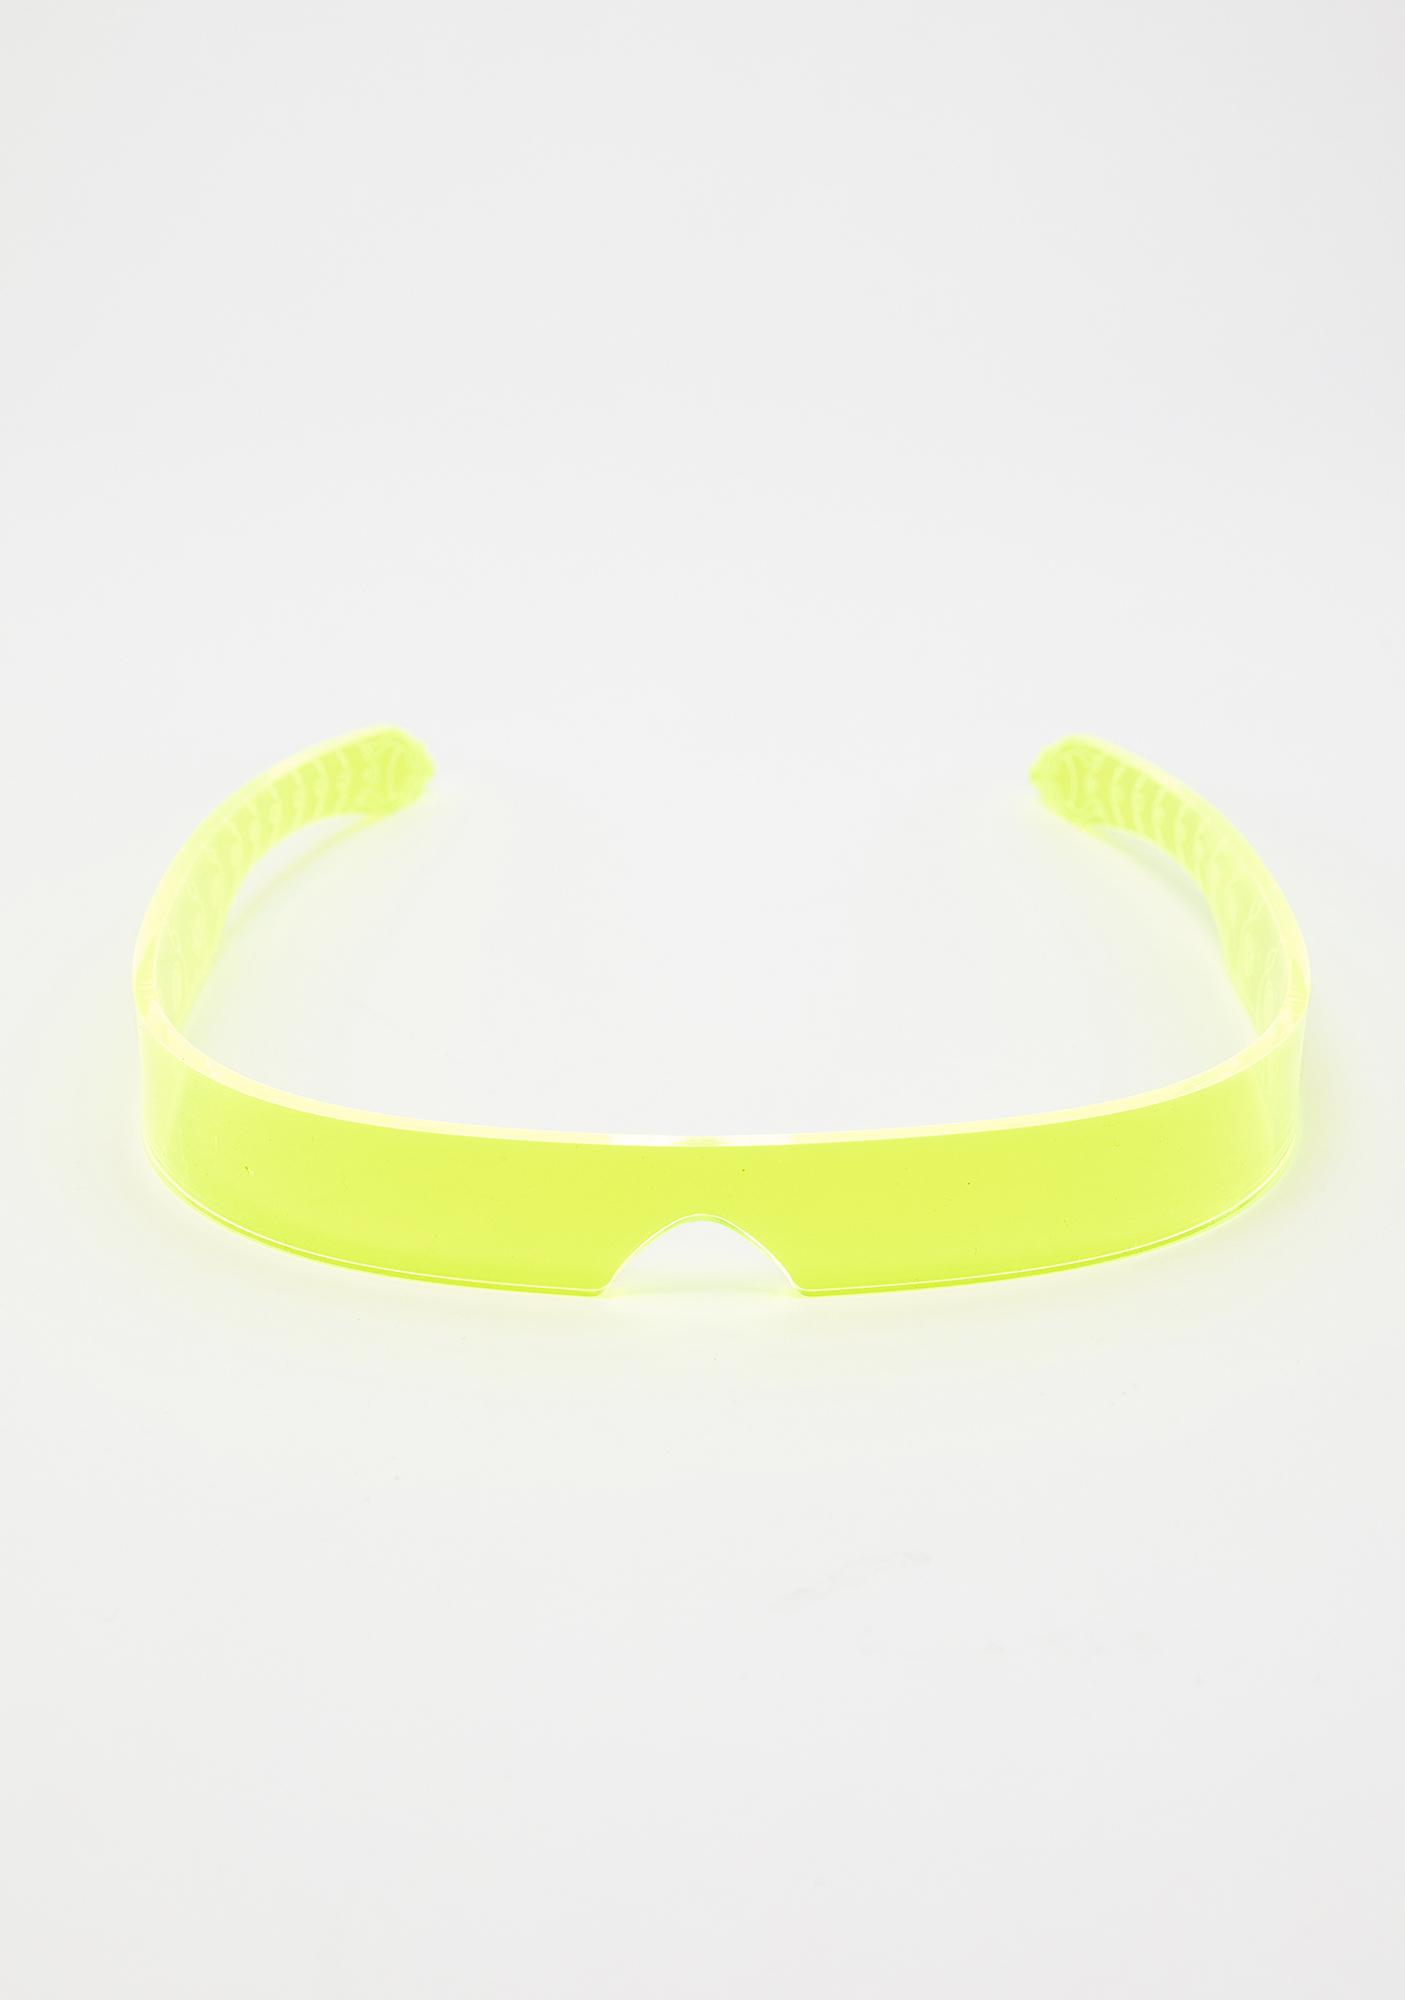 Cyberdog Yellow Flash Visor